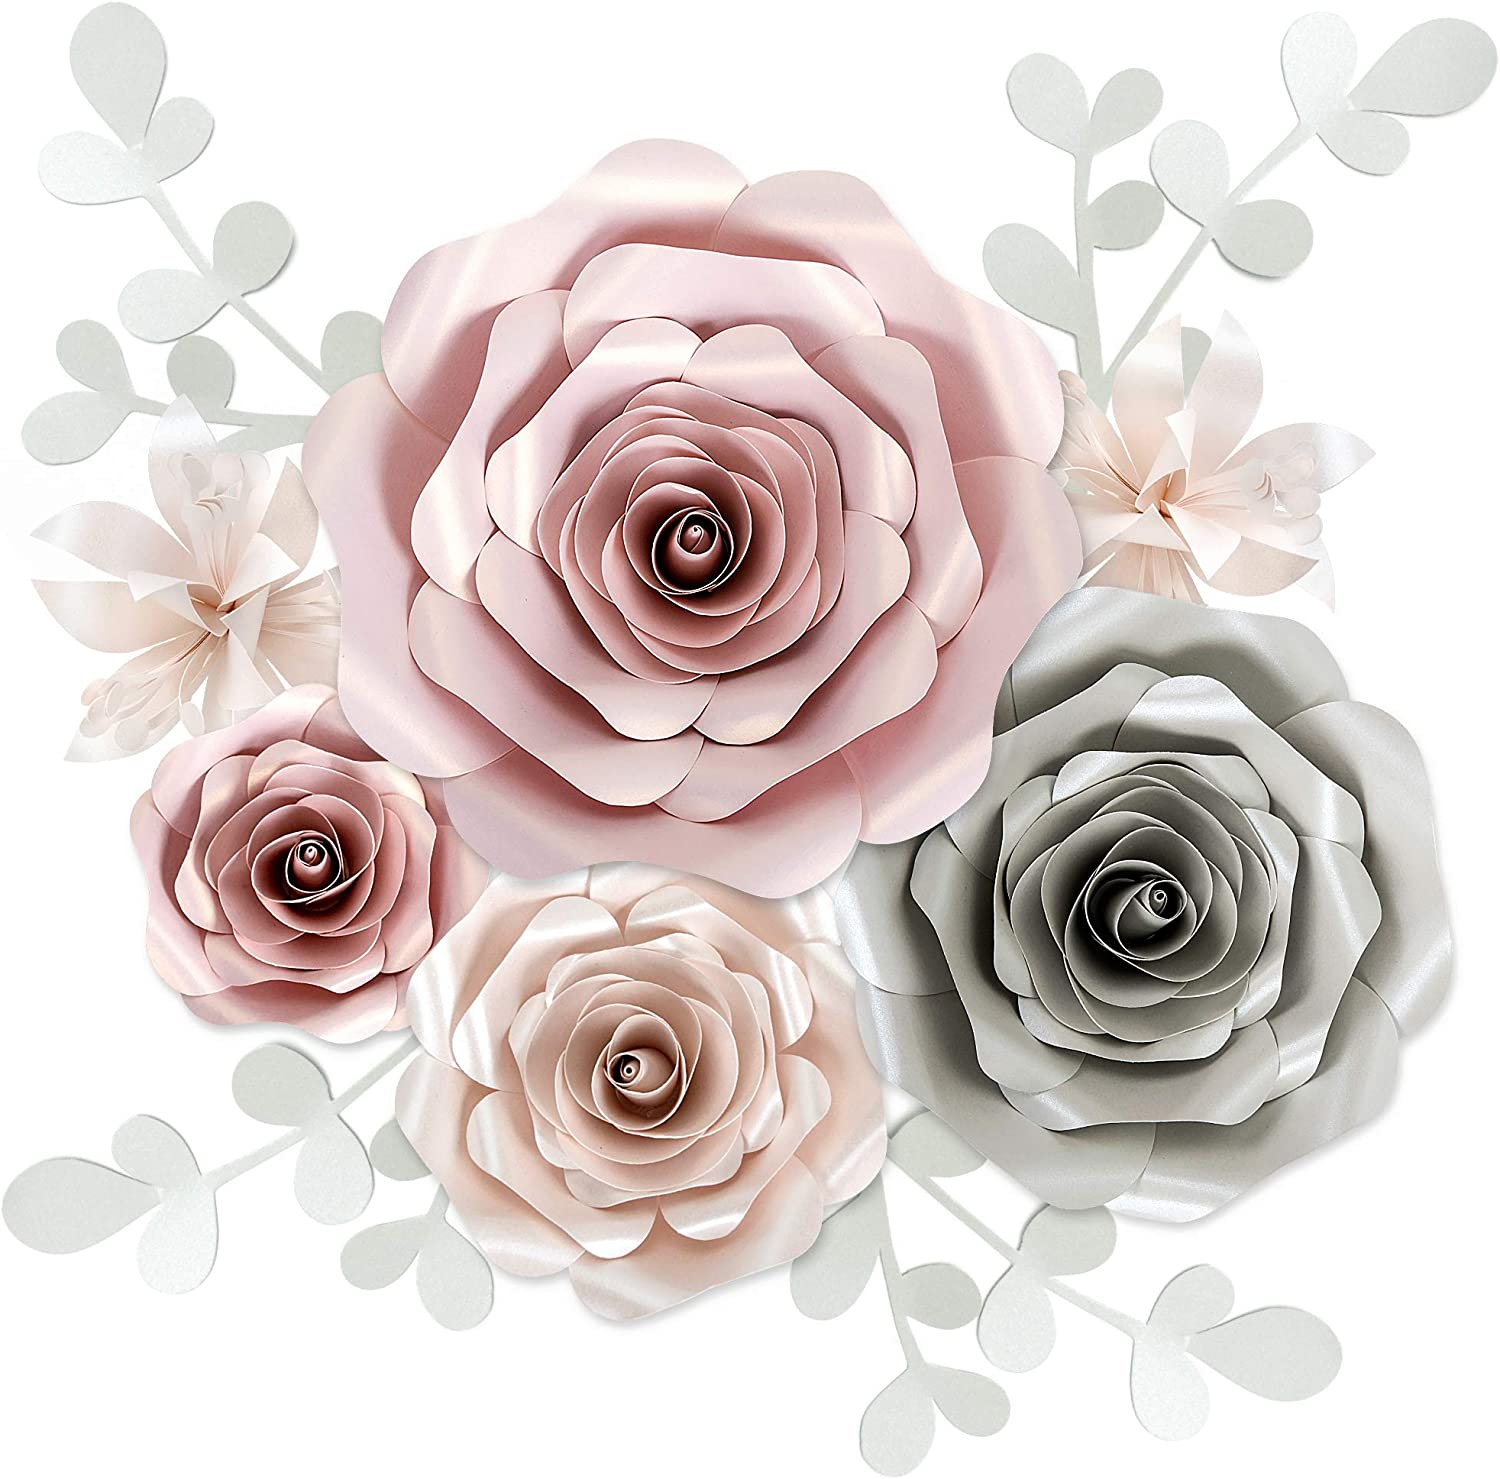 Rainbows & Lilies Large 3D Paper Flowers Decorations for Wall, Wedding, Bridal Shower, Baby Shower, Nursery Decor, Flower Backdrop, Party, 10-Pieces, Handmade & Assembled (Pink, Silver, Off-White)